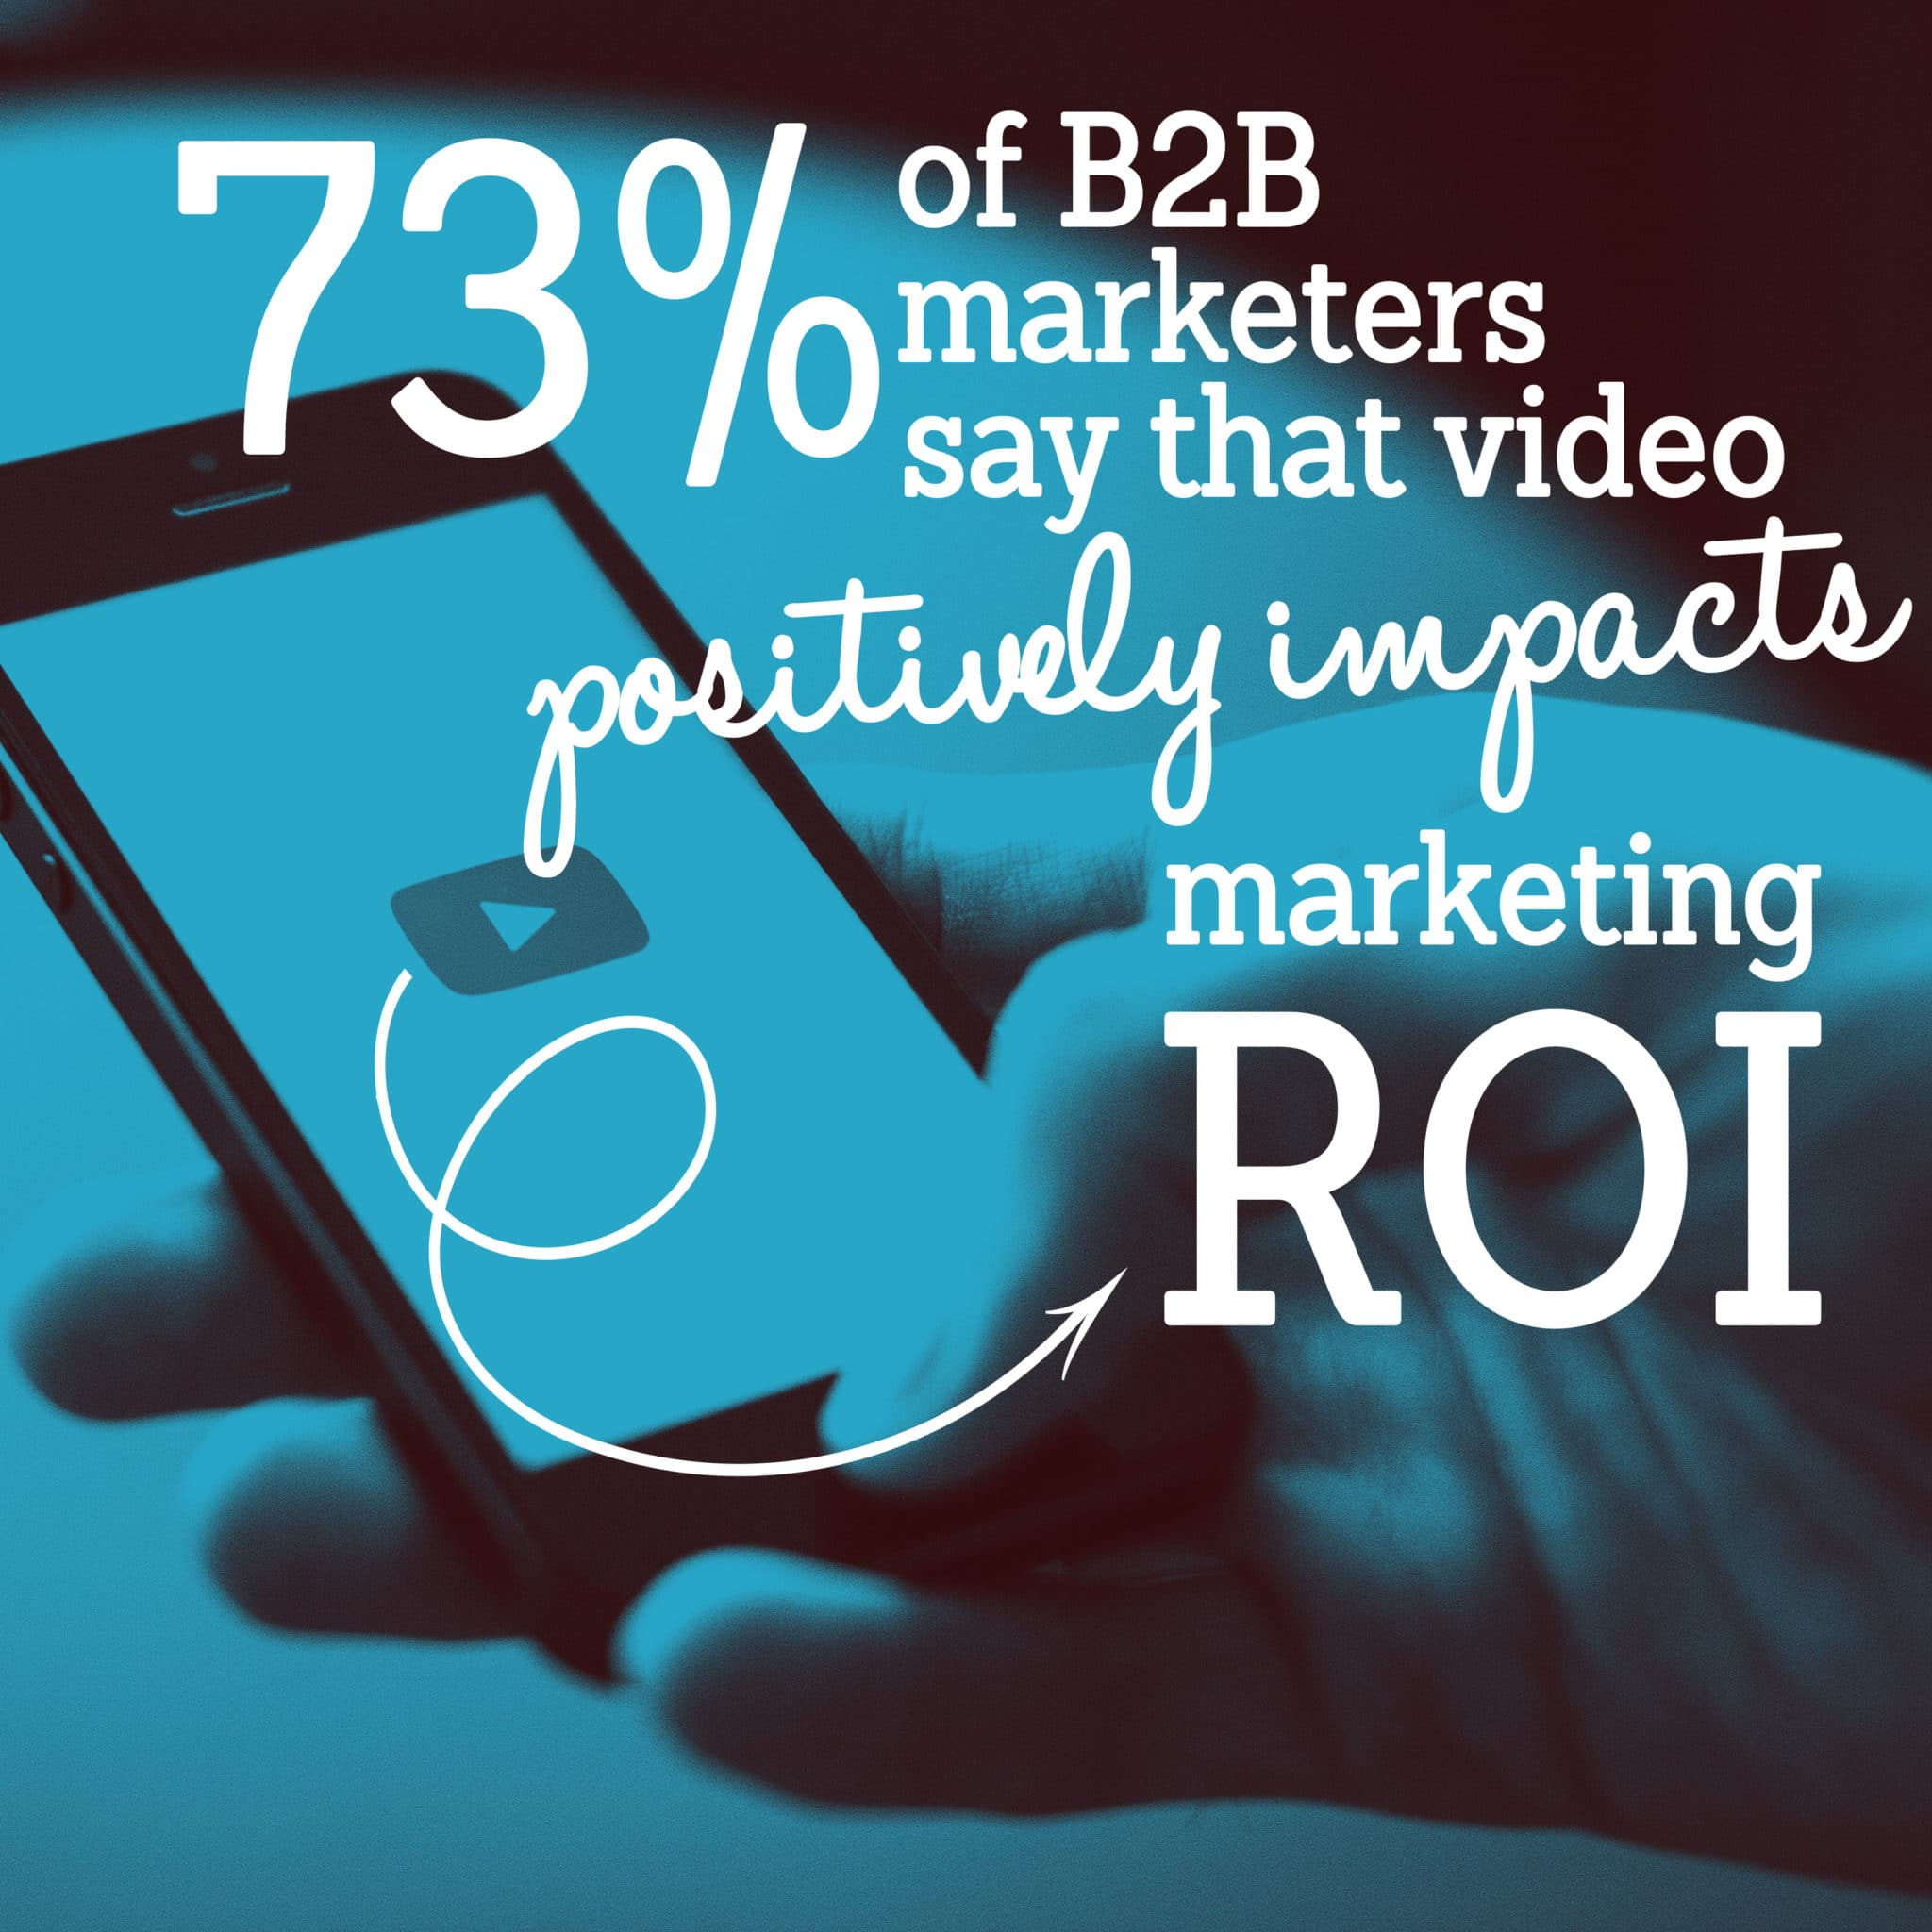 Social media video delivers a high ROI.